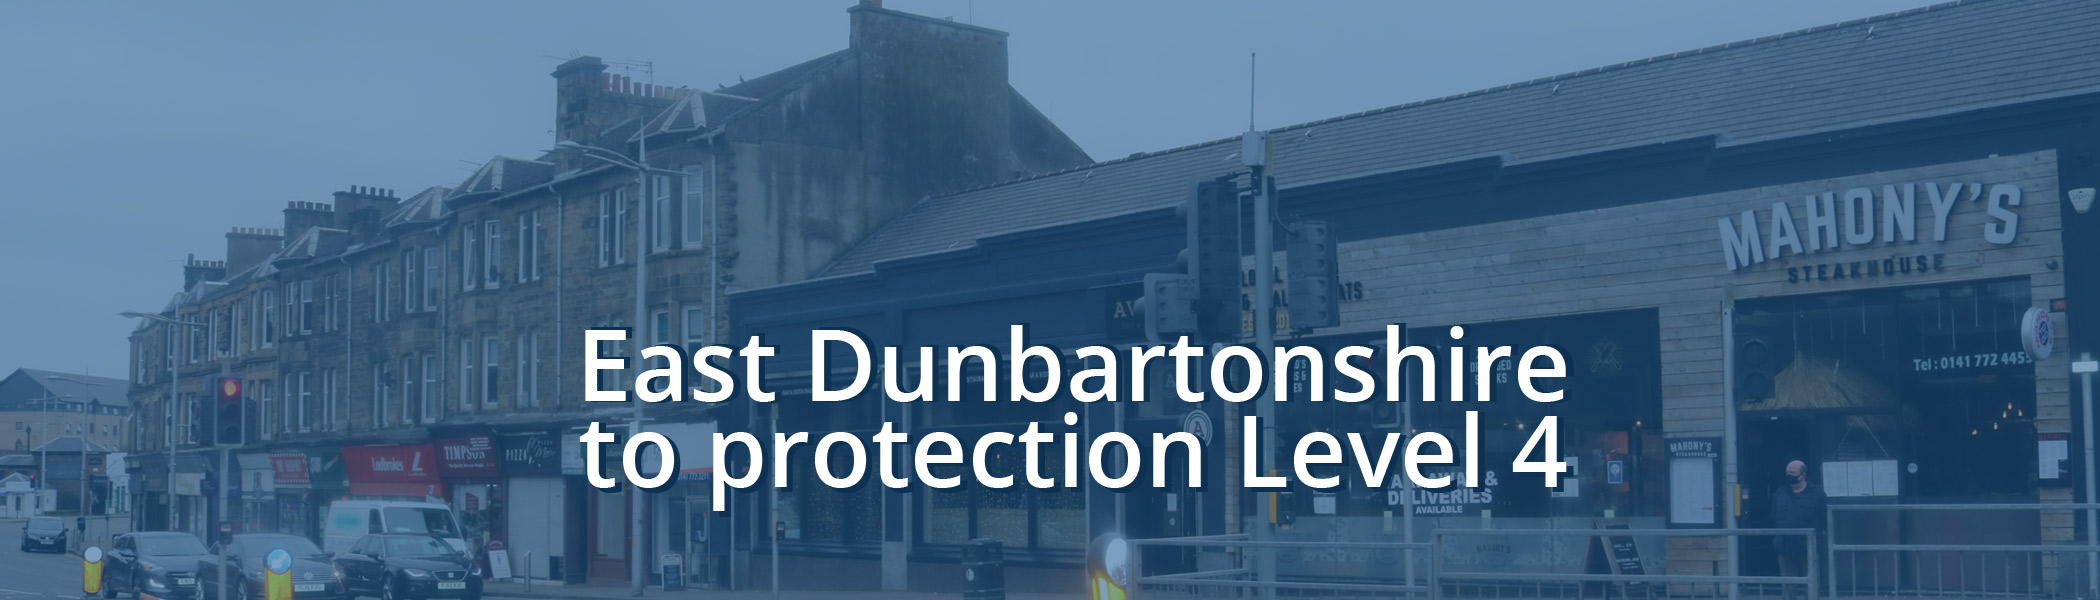 East Dunbartonshire Protection Level 4